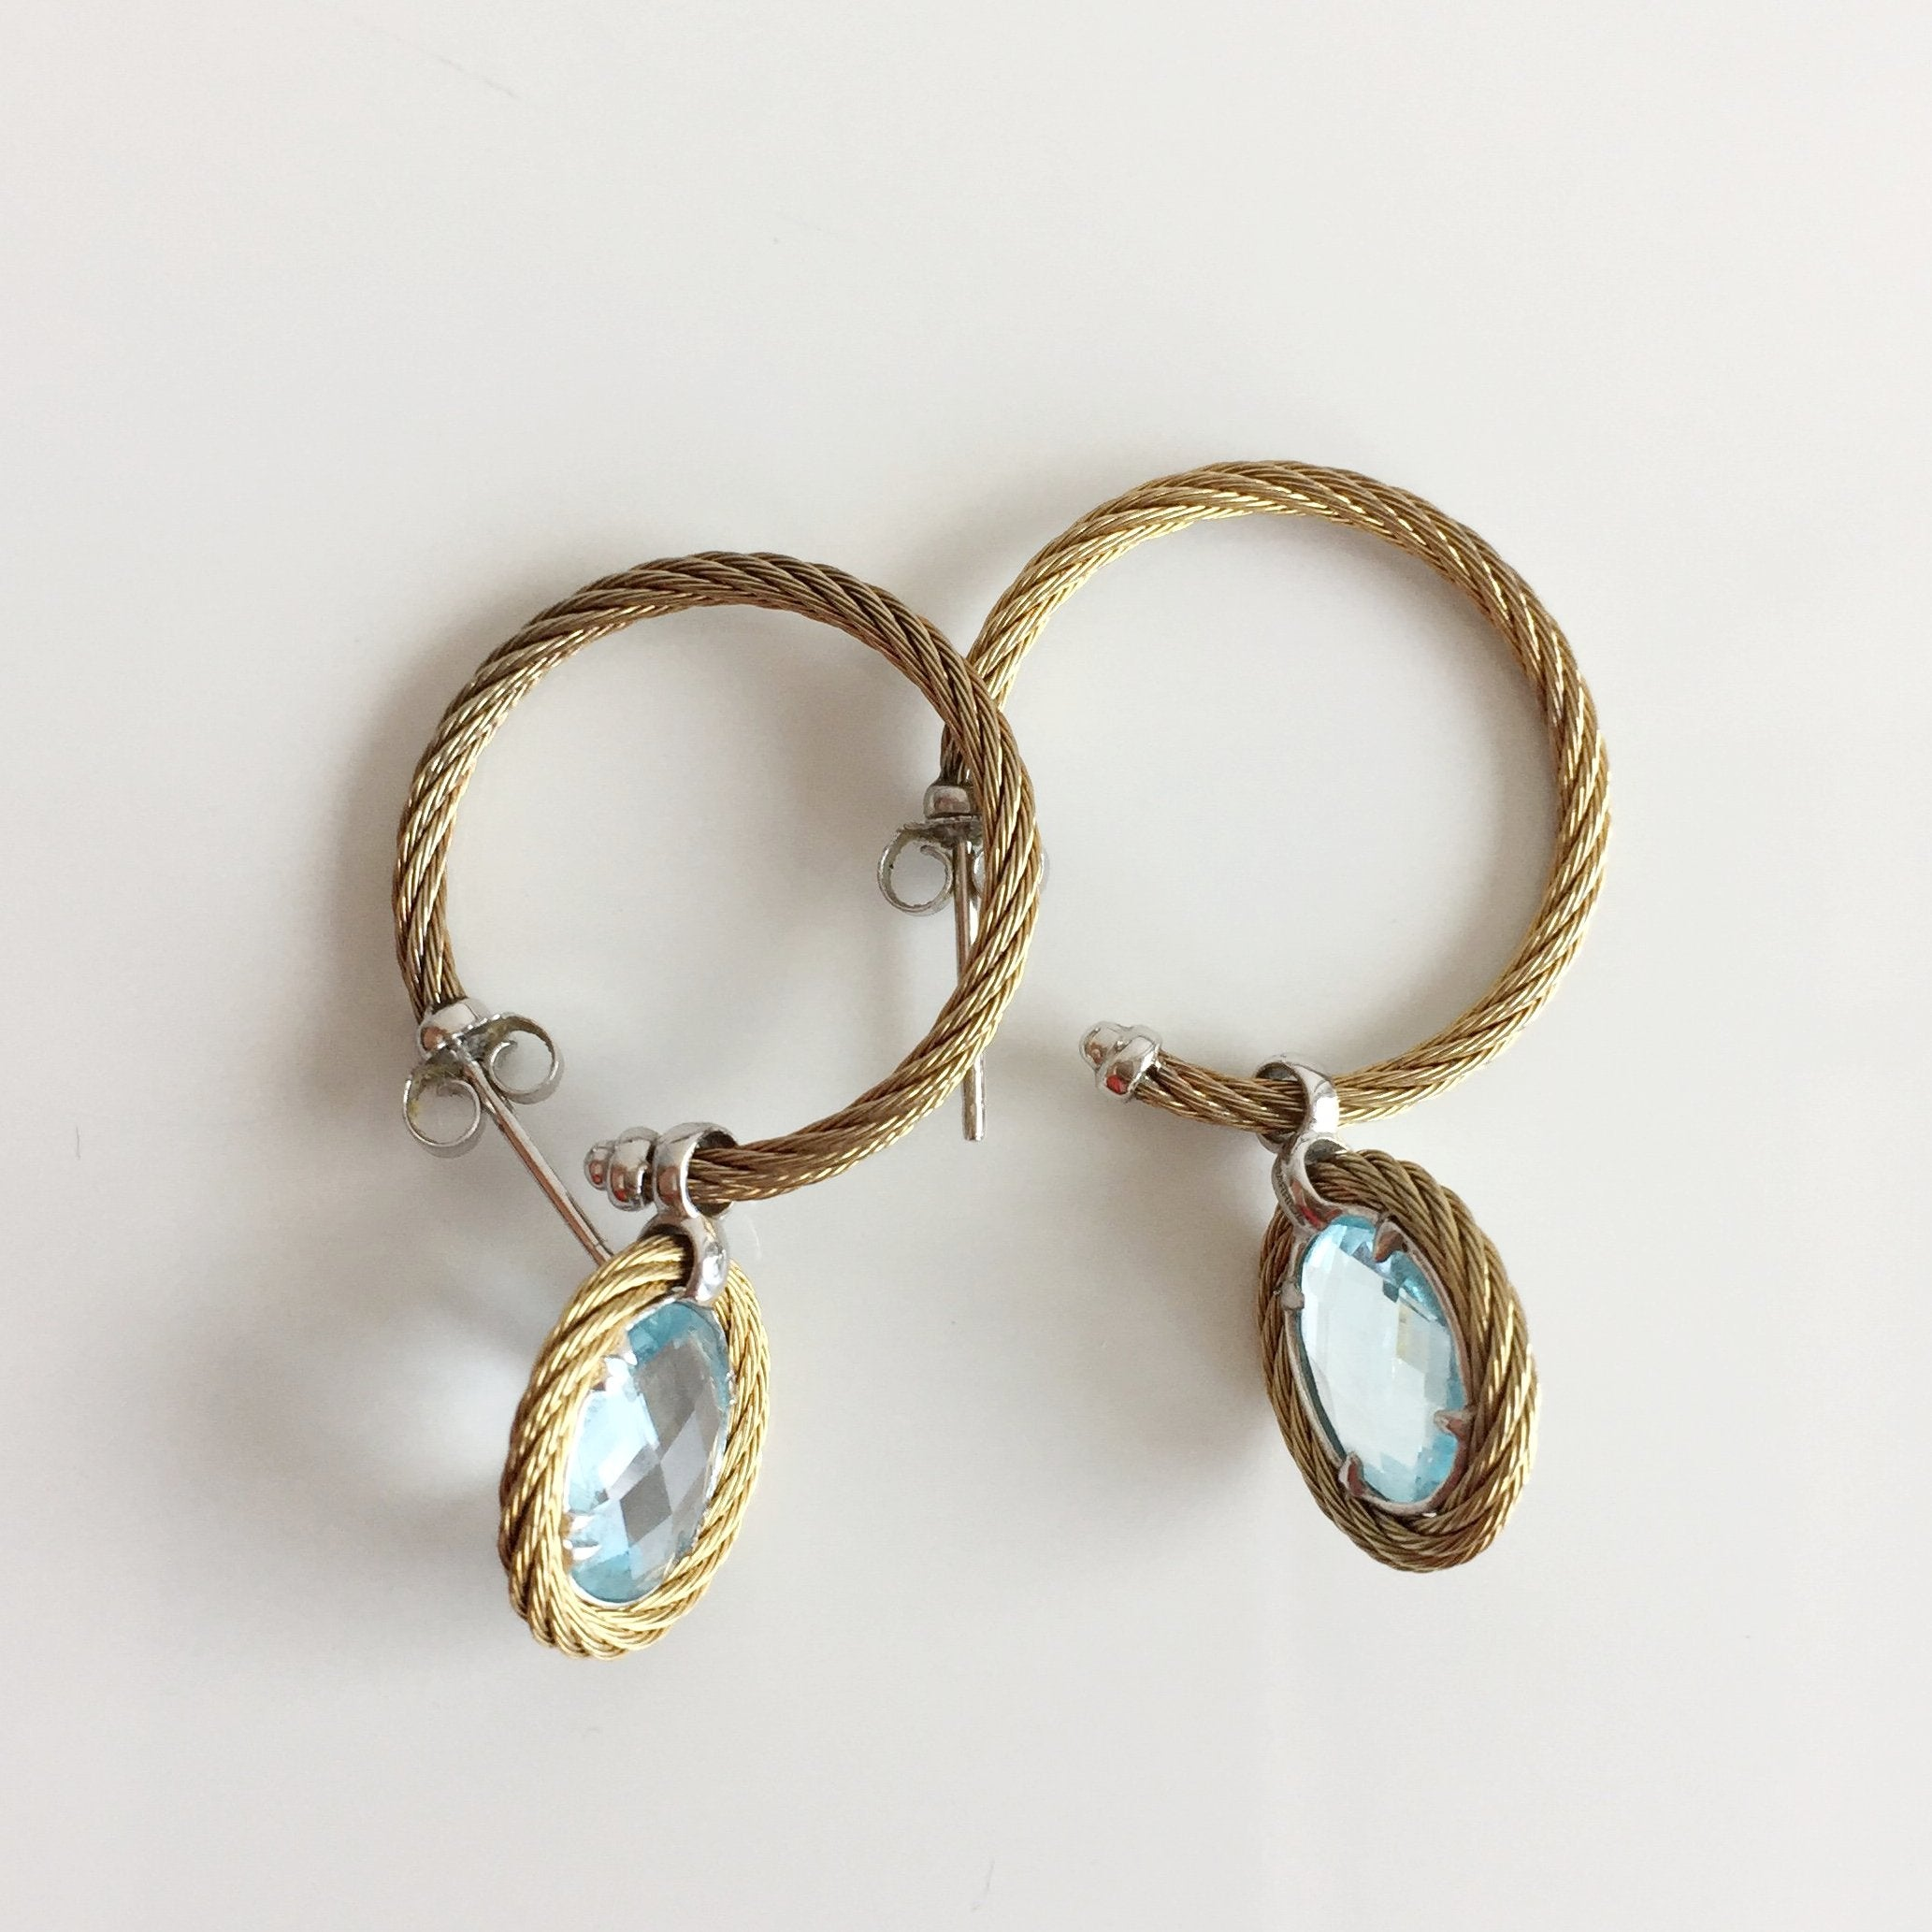 Authentic CHARRIOL Blue Topaz 18K Gold Cable Earrings